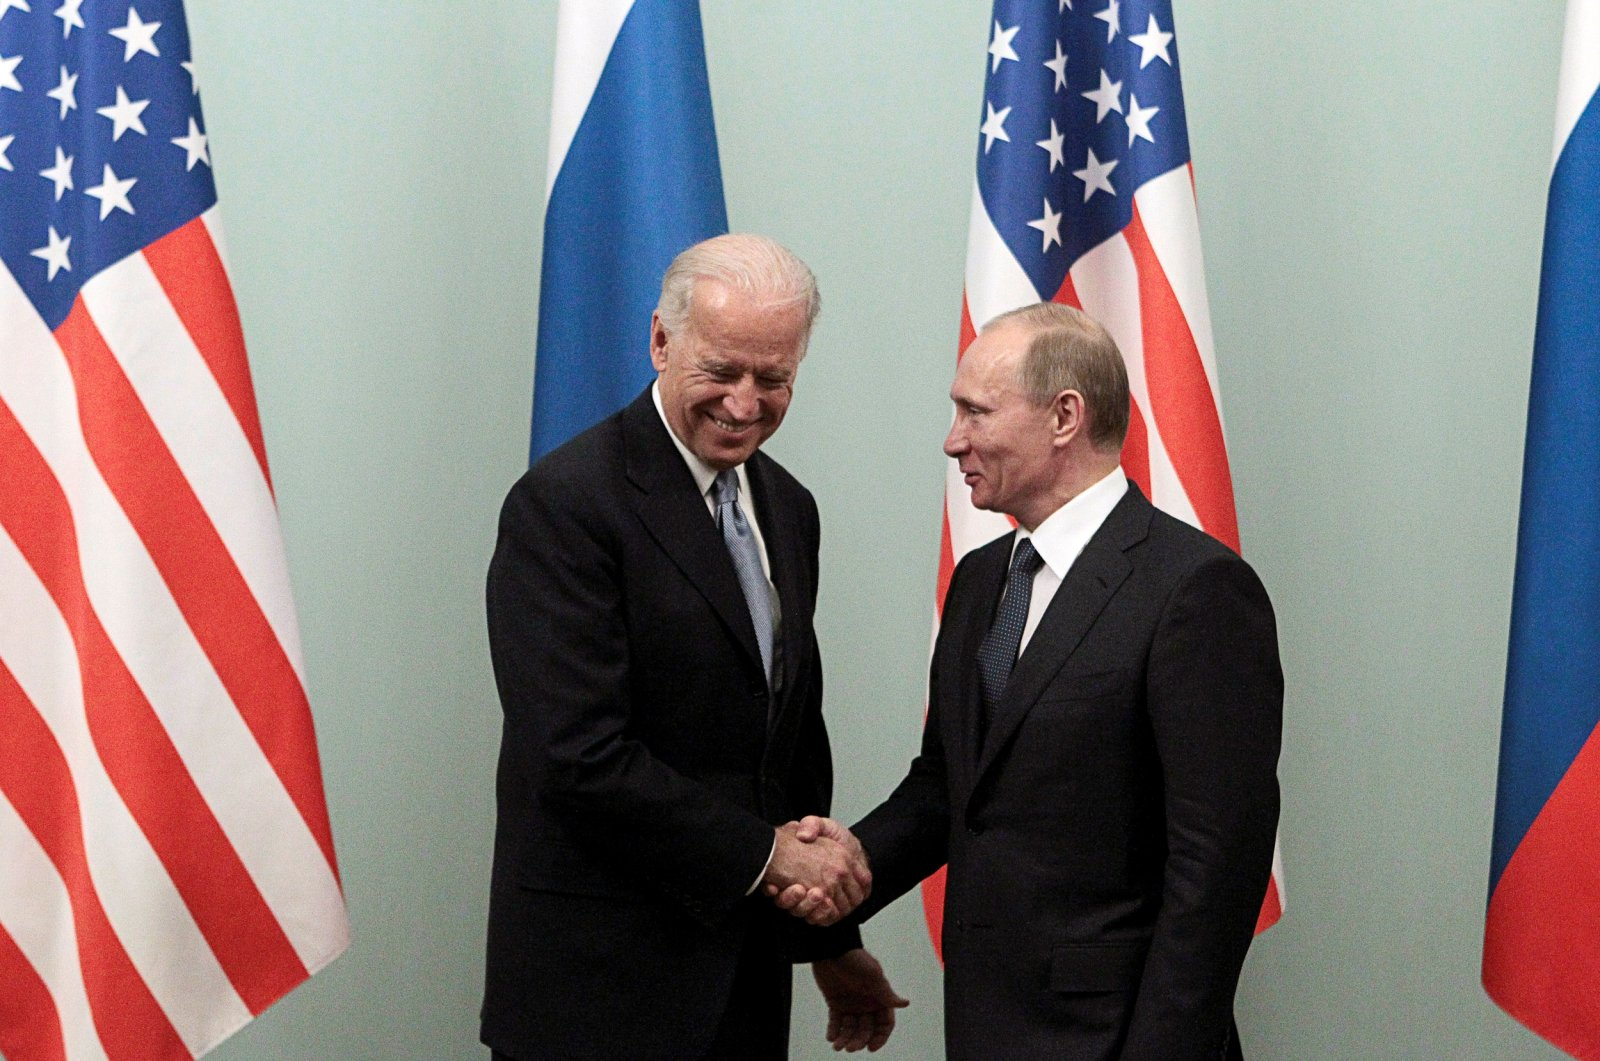 Russian Prime Minister Vladimir Putin (R) shakes hands with then-U.S. Vice President Joe Biden during their meeting in Moscow on March 10, 2011. (Reuters Photo)